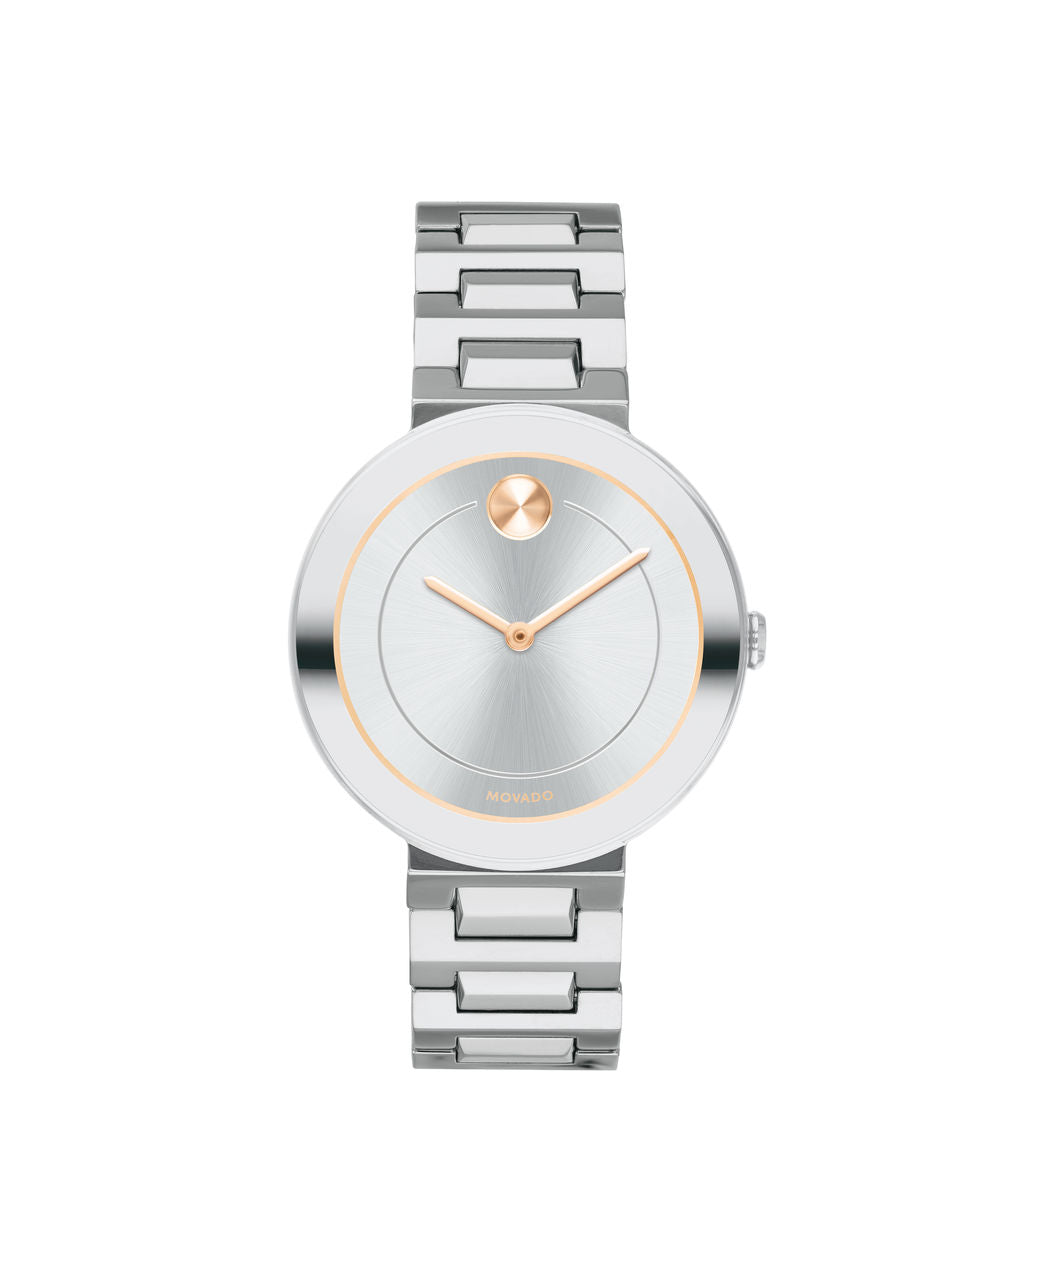 896185567 Movado BOLD Women's Stainless Steel Watch – D'ore Jewelry